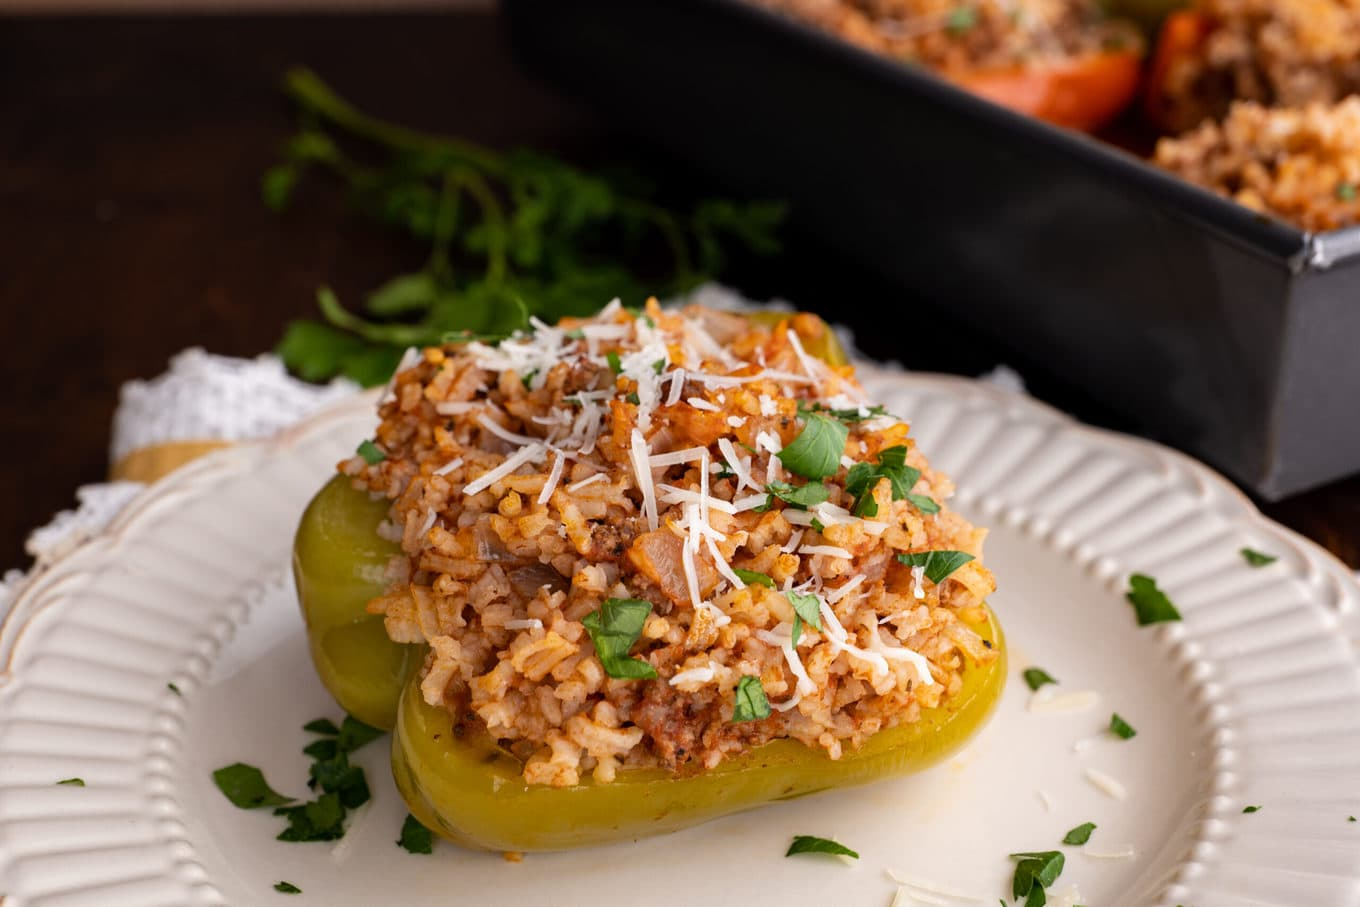 Stuffed Peppers on plate with parmesan & parsley